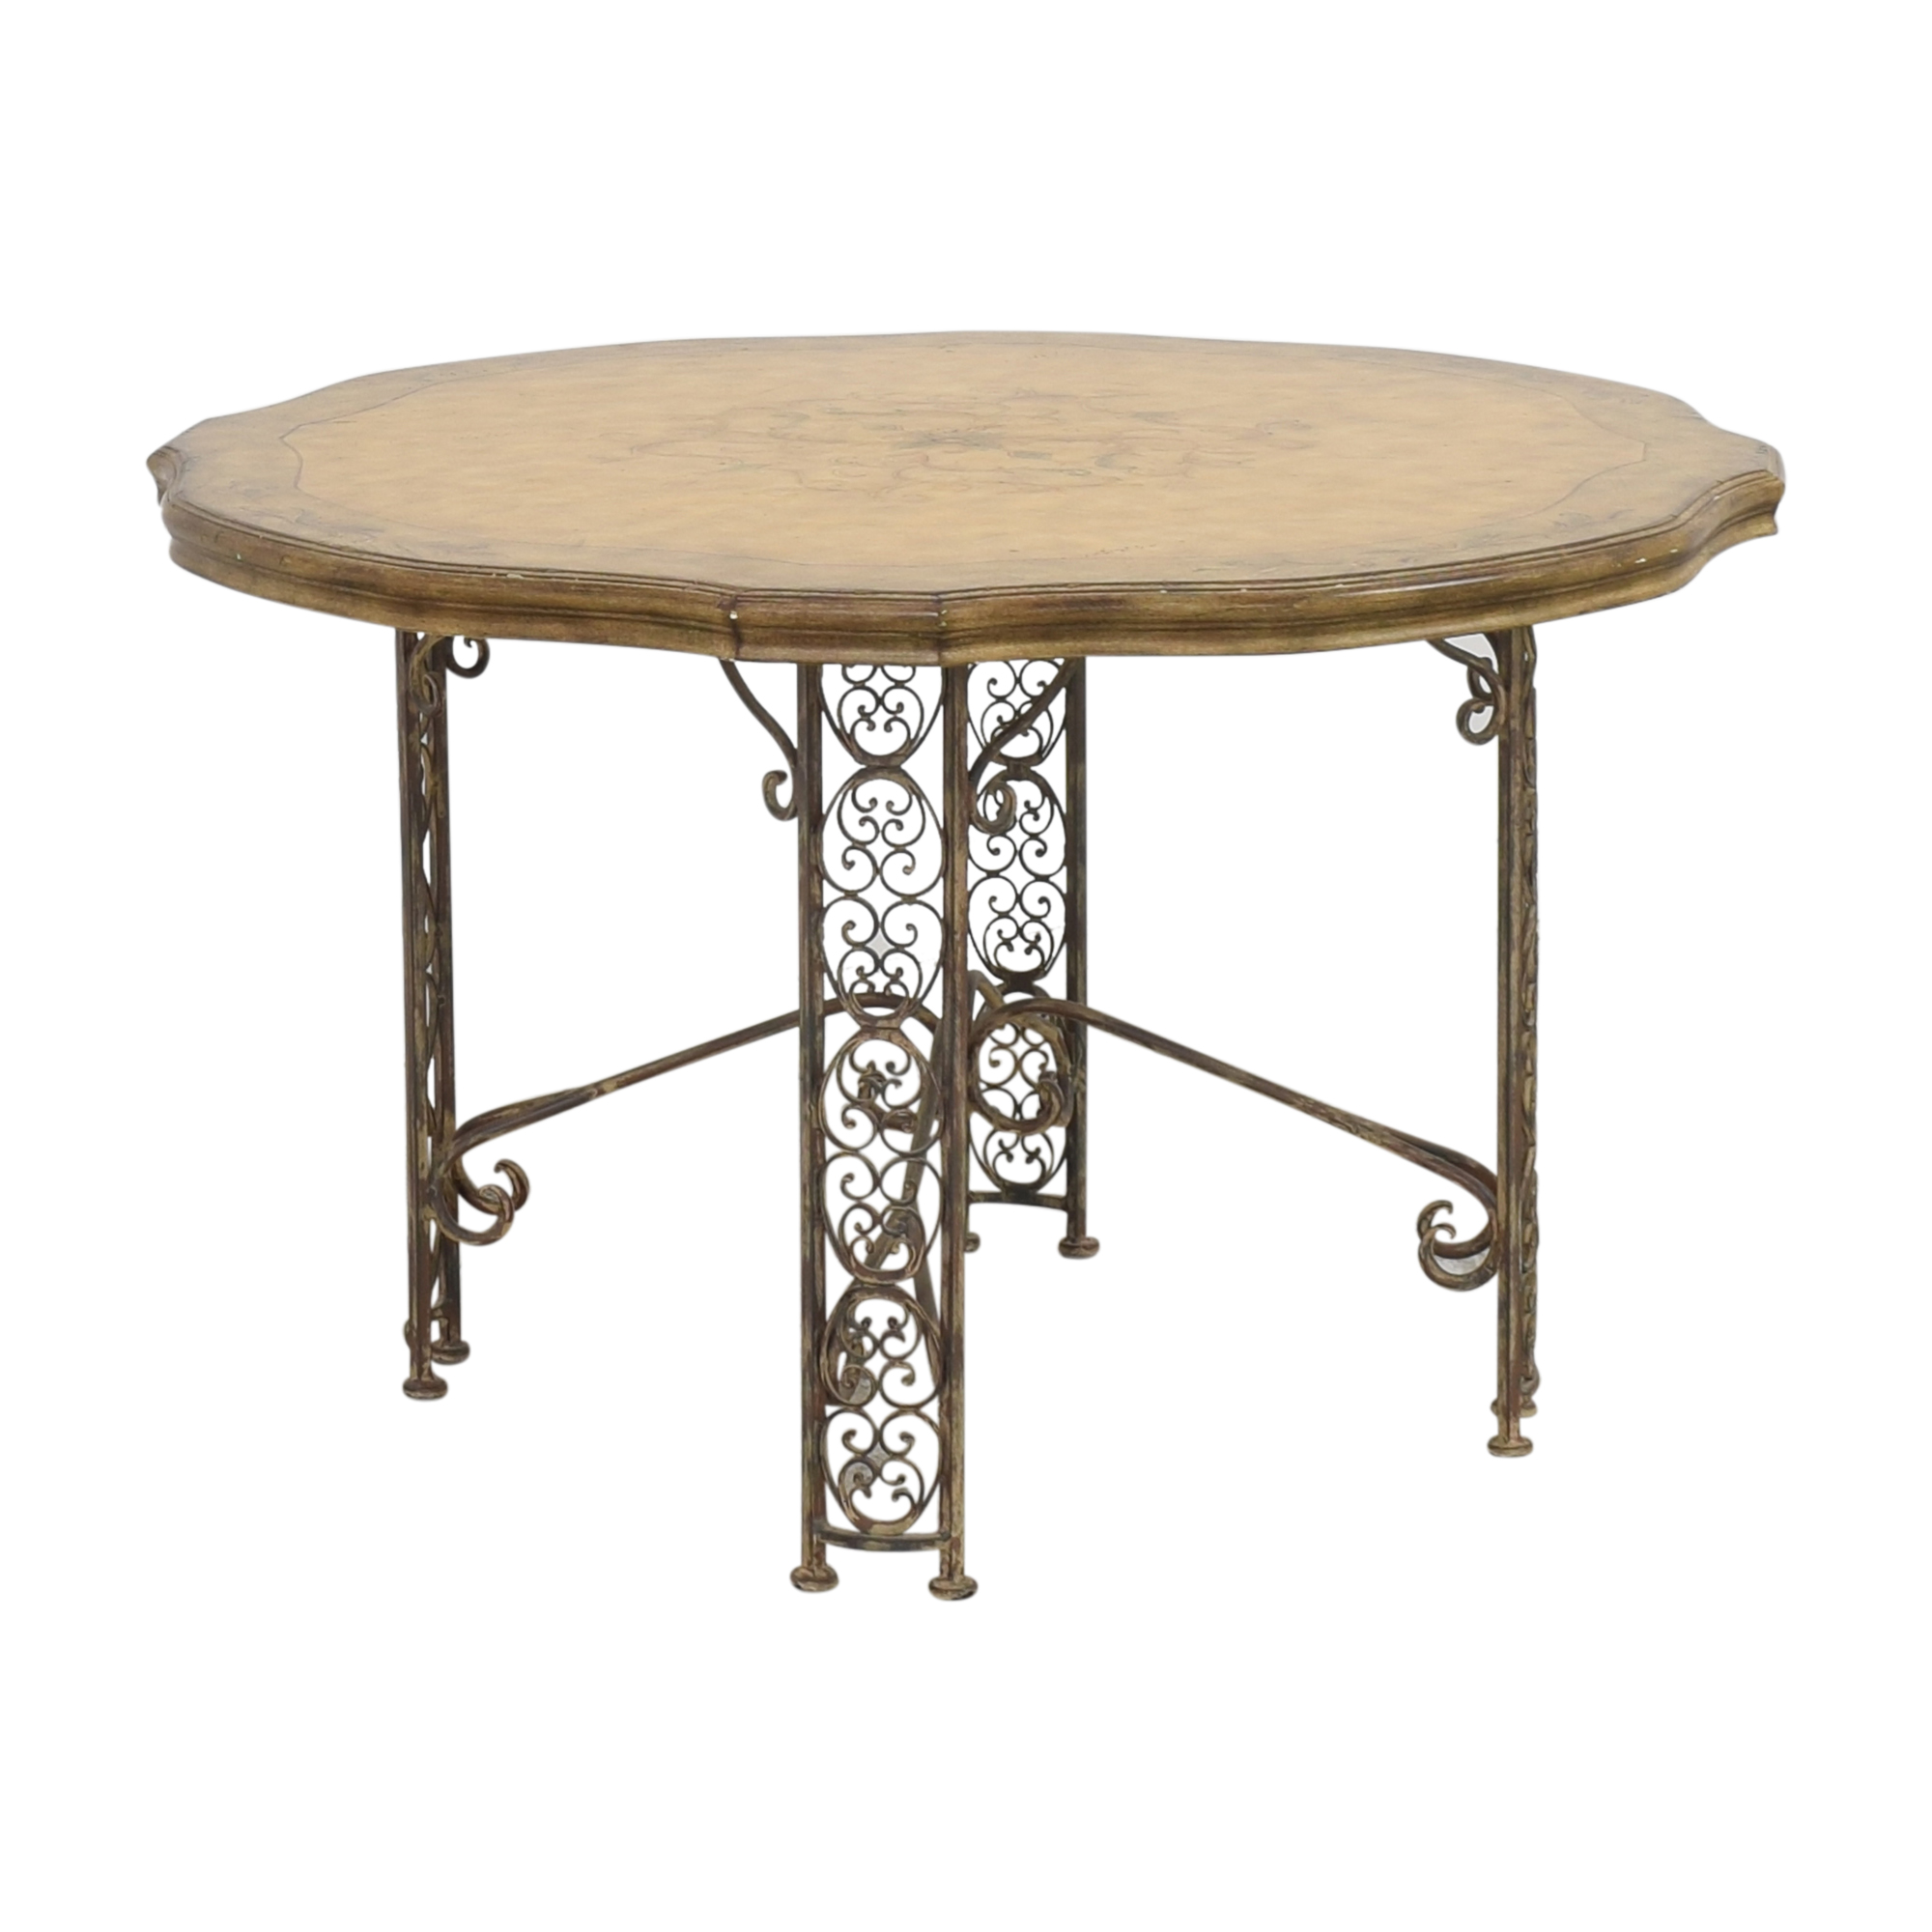 Domain Domain Decorative Round Dining Table dimensions